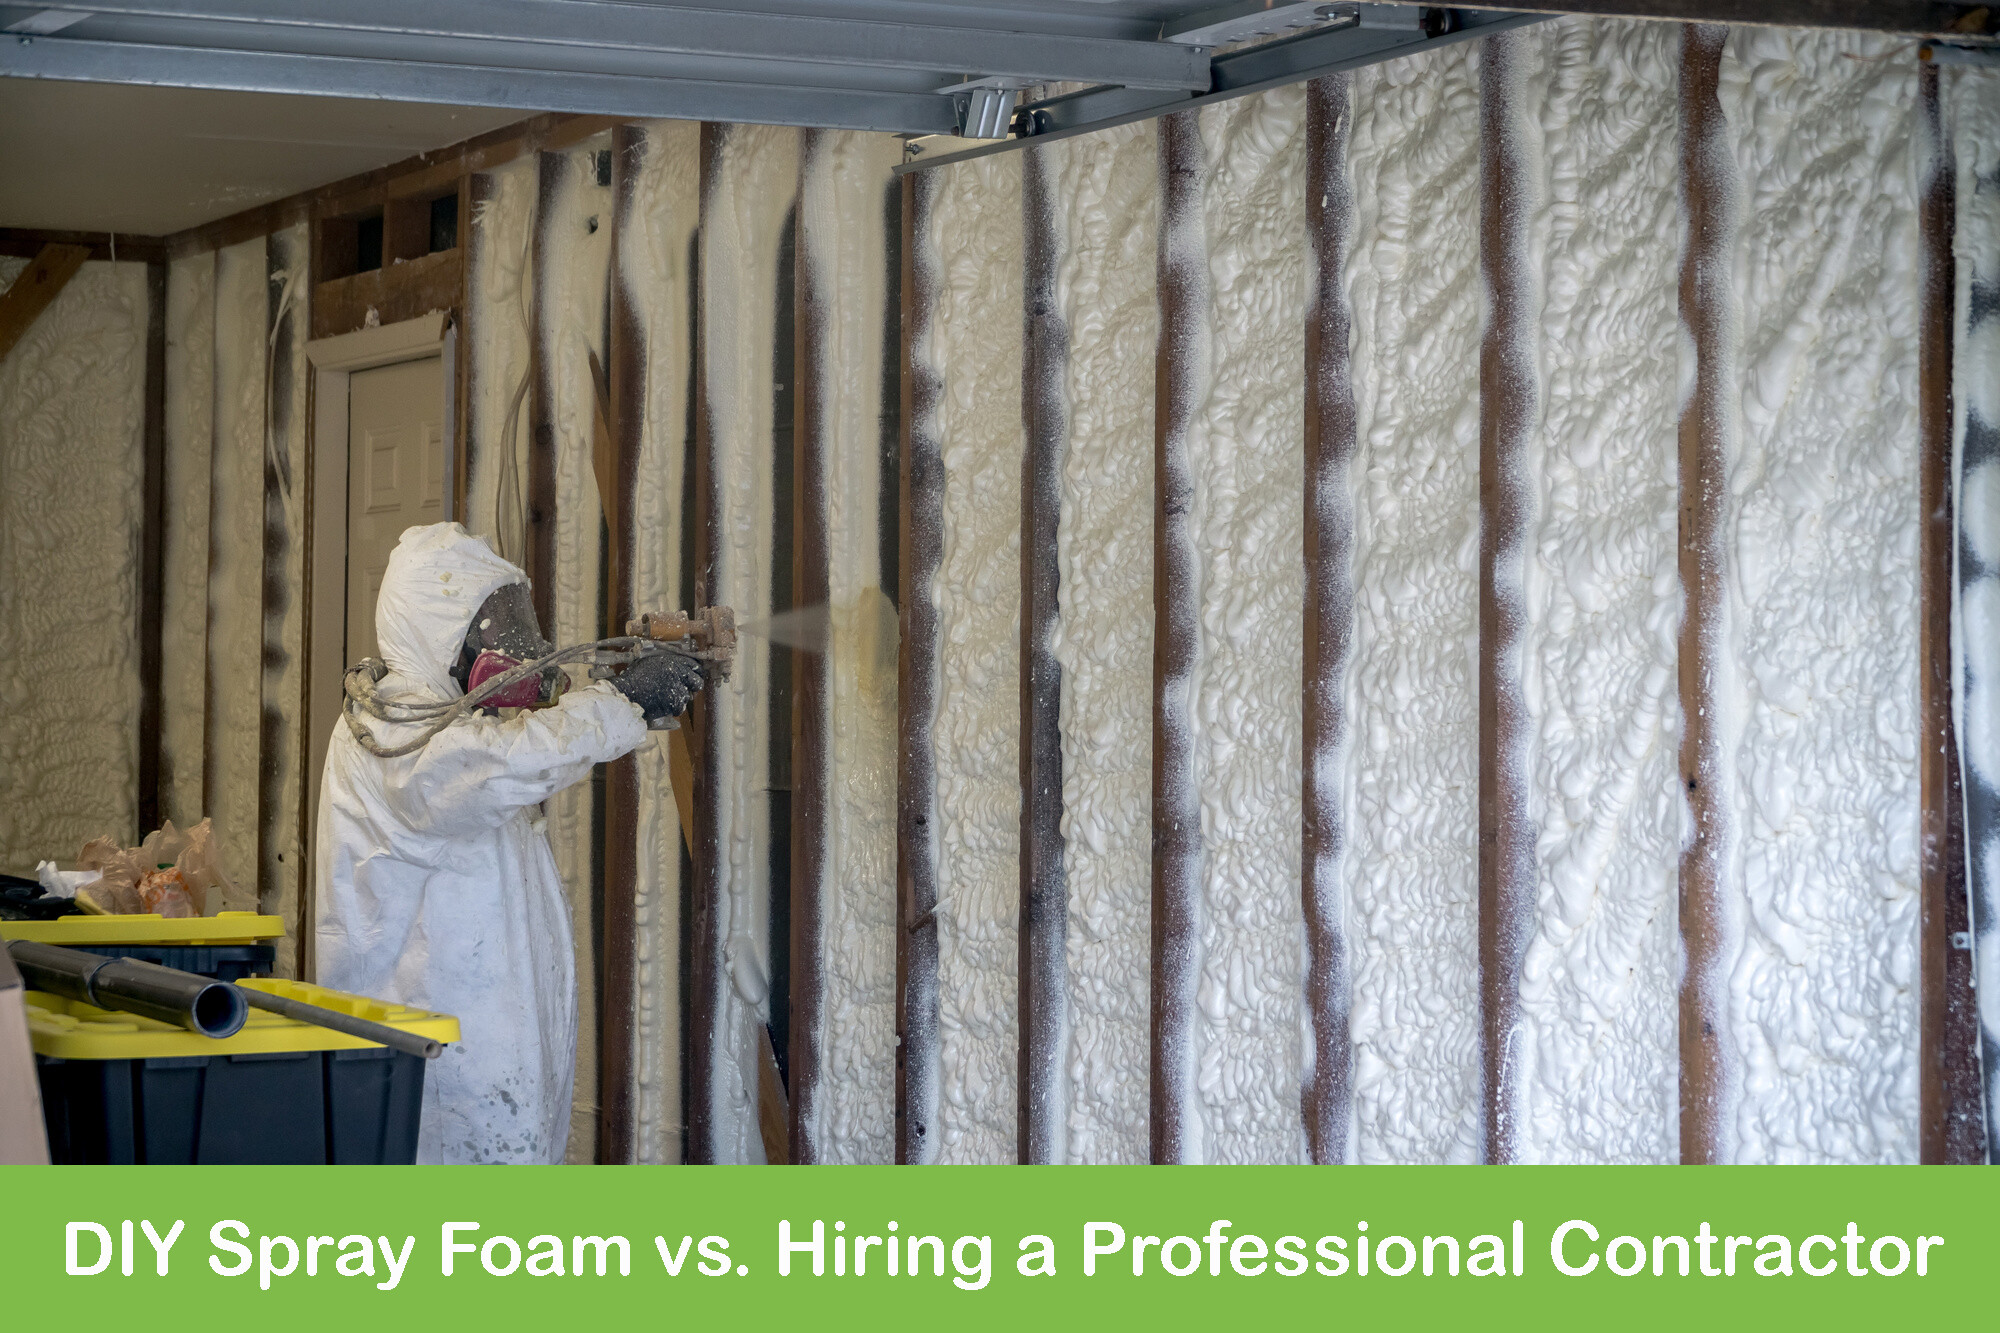 DIY Spray Foam vs. Hiring a Professional Contractor